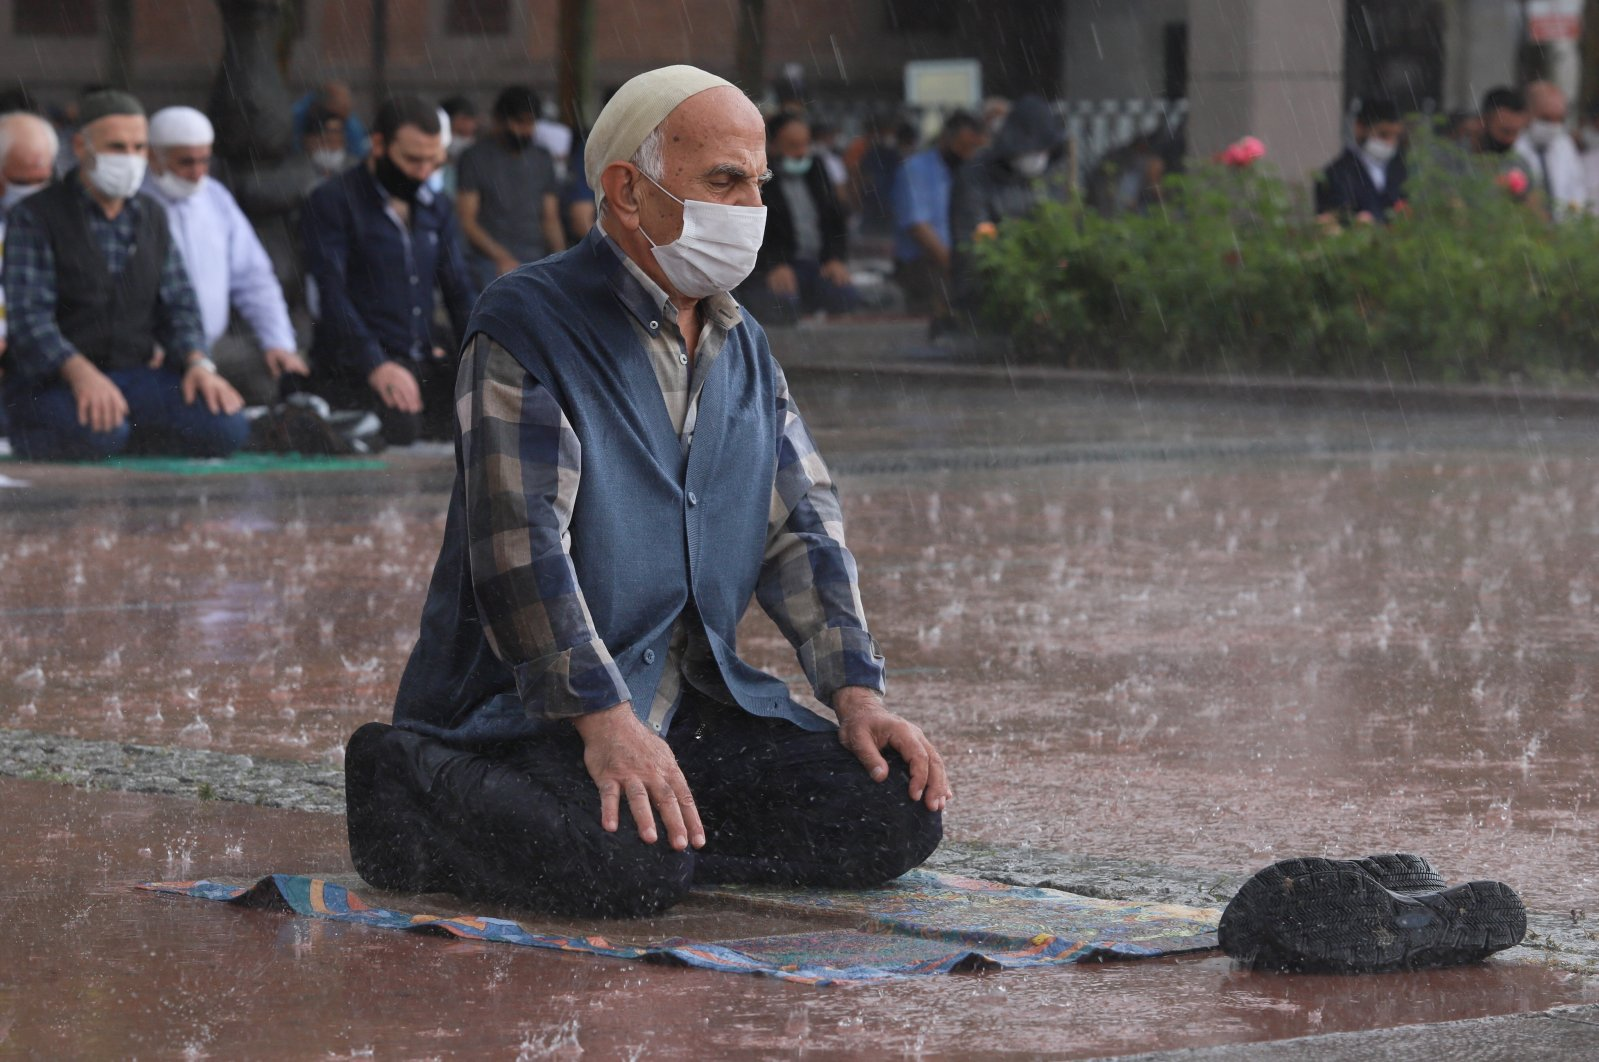 A man prays as it rains in the courtyard of a mosque which was opened months after COVID-19-induced lockdowns in Ankara, June 19, 2020. (IHA Photo)